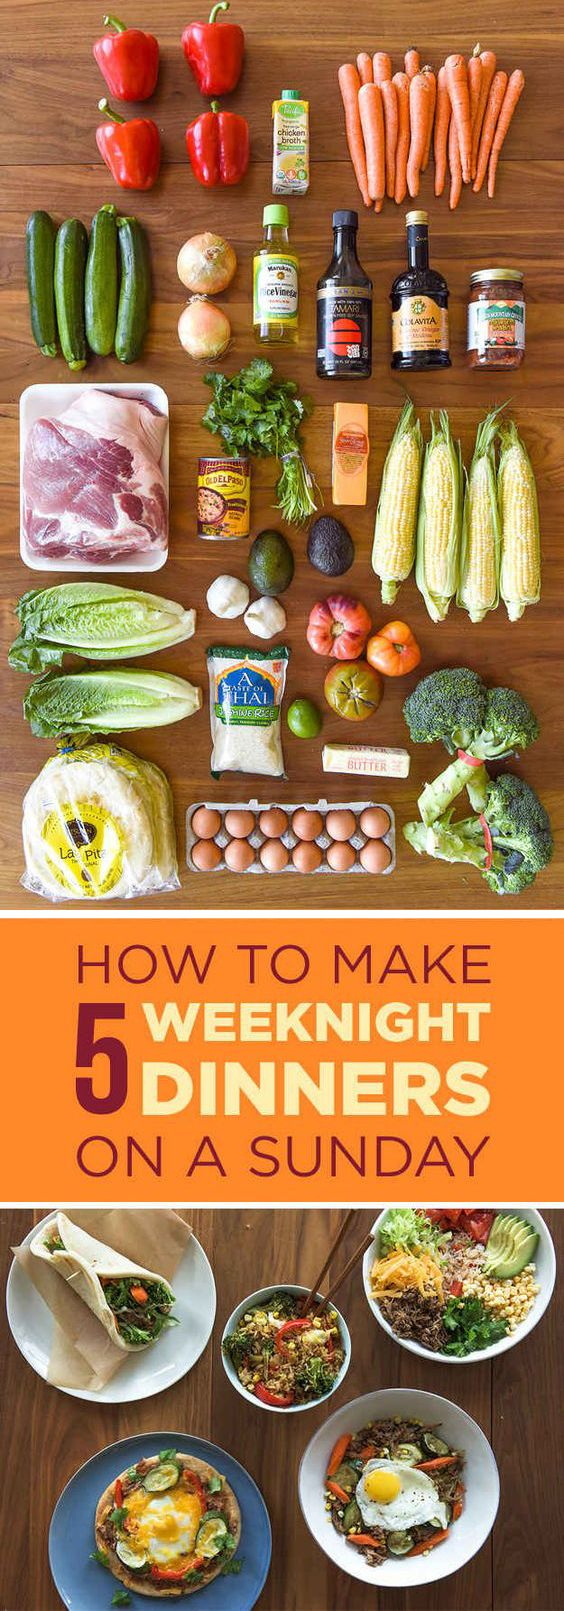 Here's A Make-Ahead Meal Plan That Anyone Can Cook